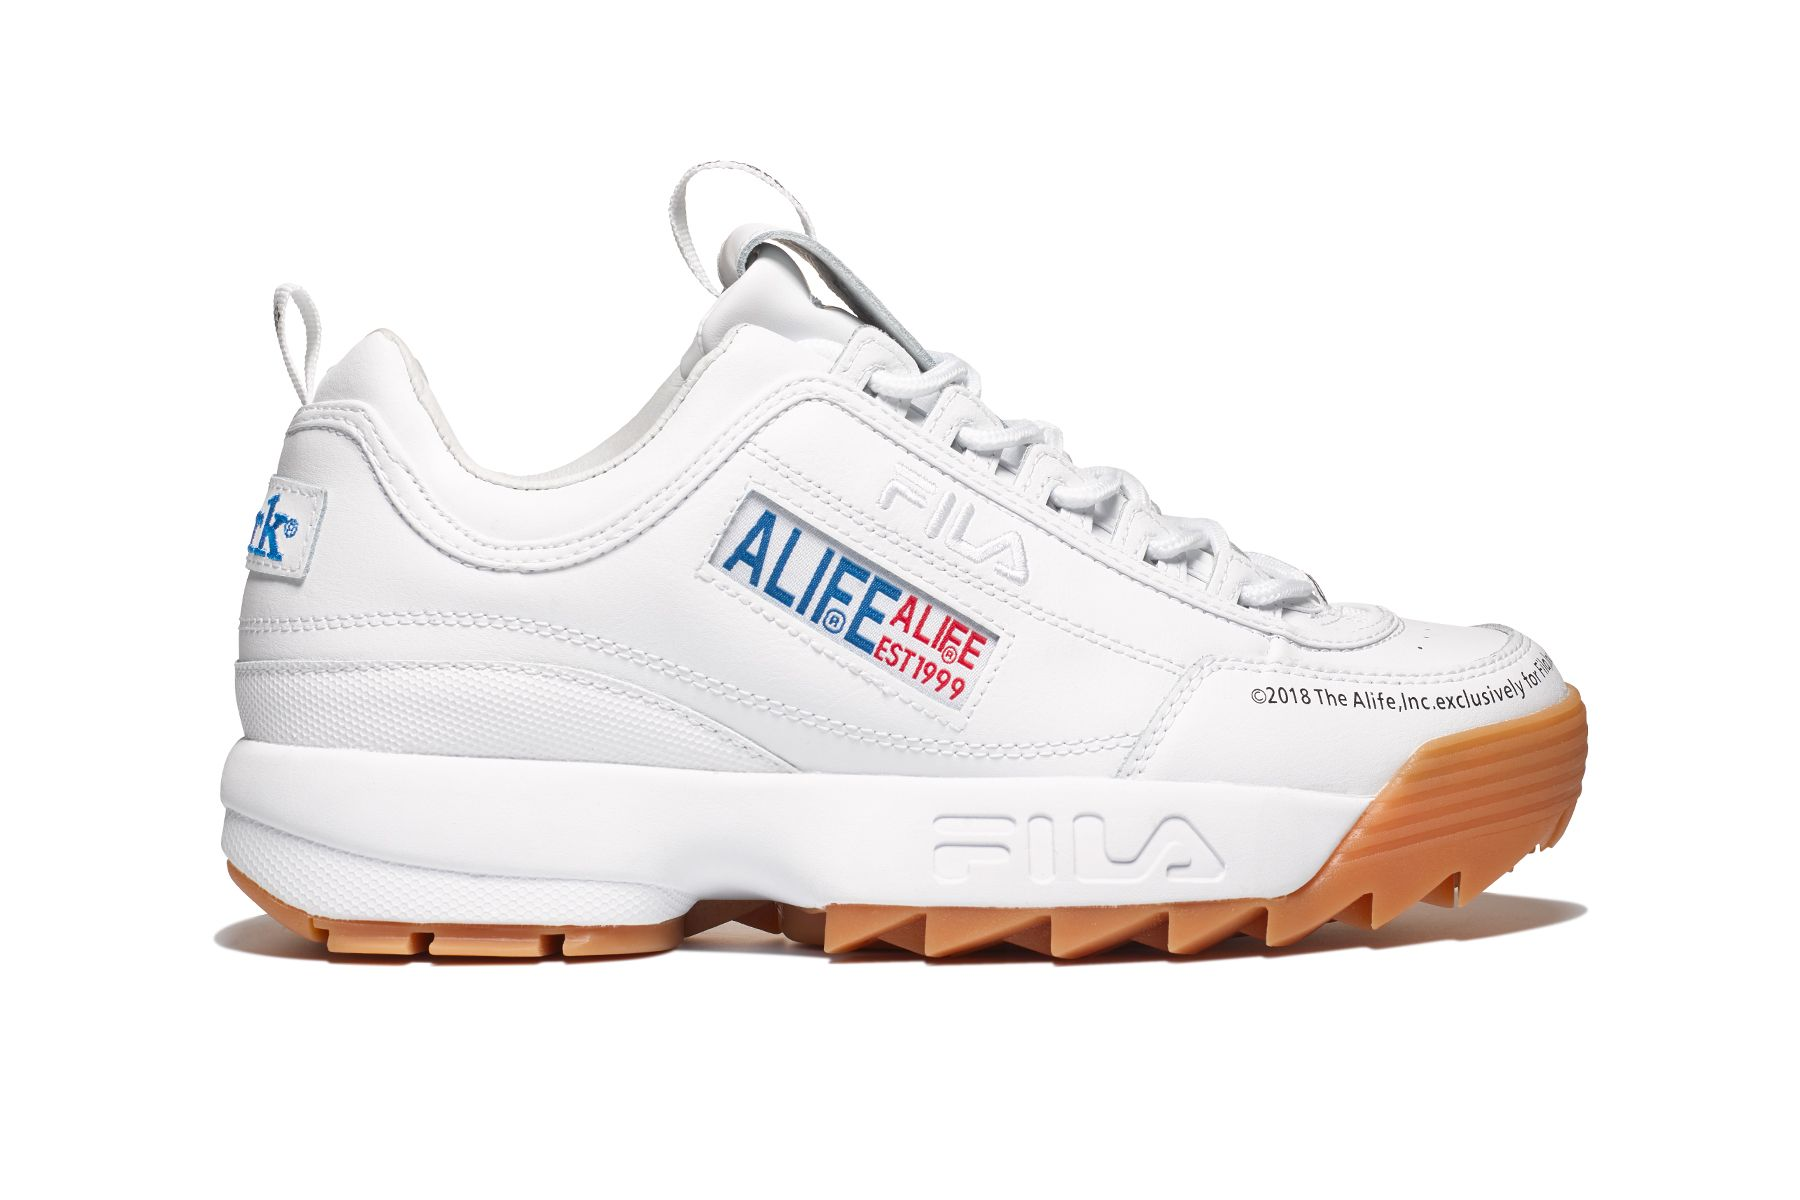 Disruptor Fila In Together On And Tats Alife 2 2018 Themed Come A ... 54714a8513f0